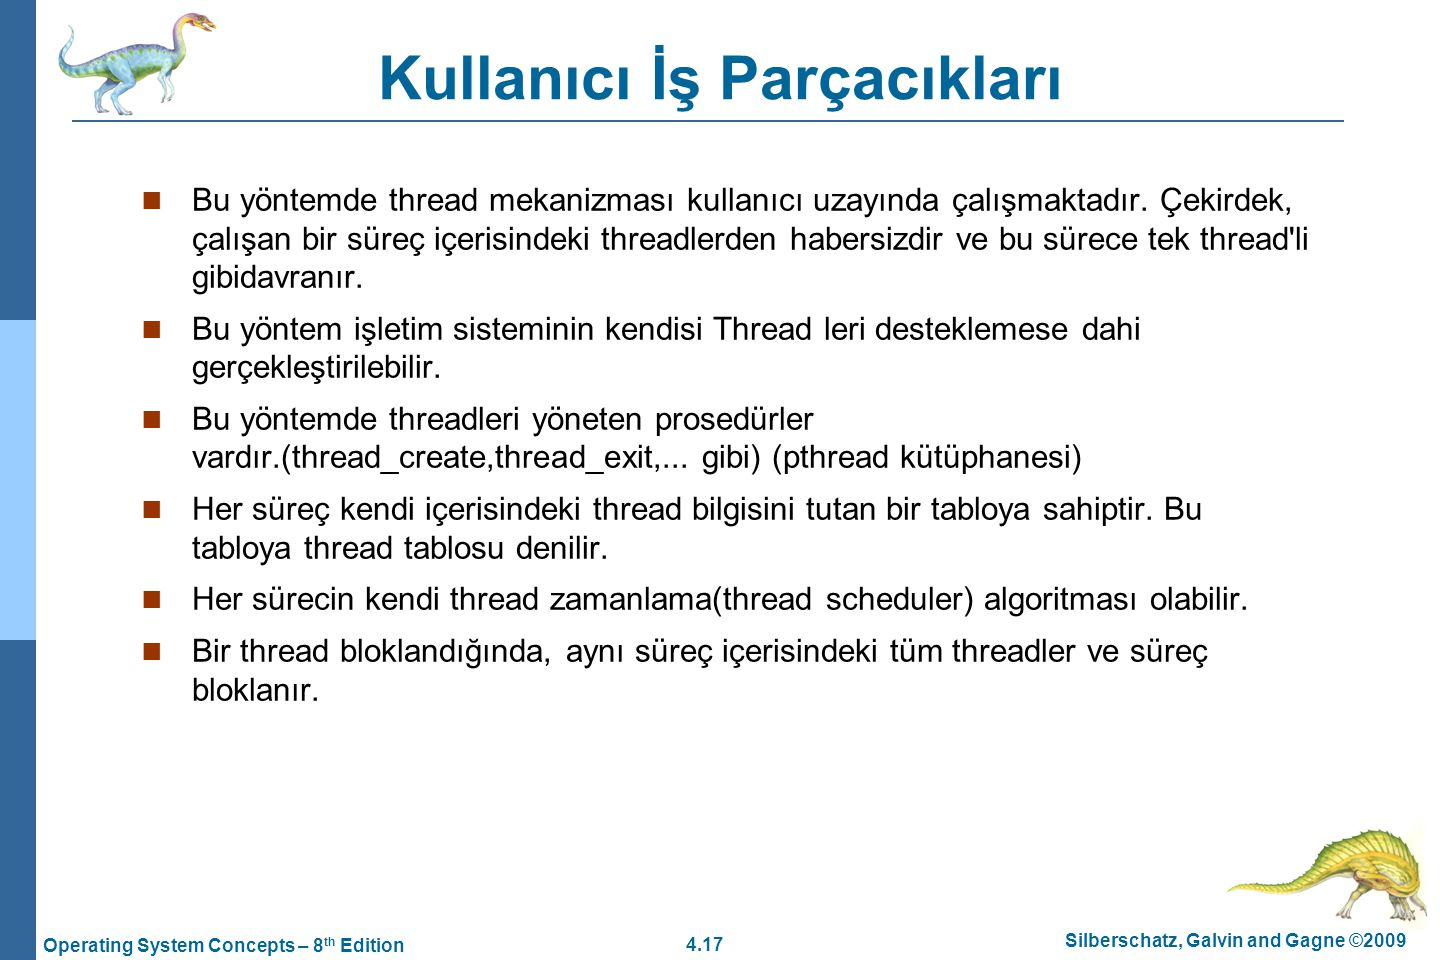 4.17 Silberschatz, Galvin and Gagne ©2009 Operating System Concepts – 8 th Edition Kullanıcı İş Parçacıkları Bu yöntemde thread mekanizması kullanıcı uzayında çalışmaktadır.